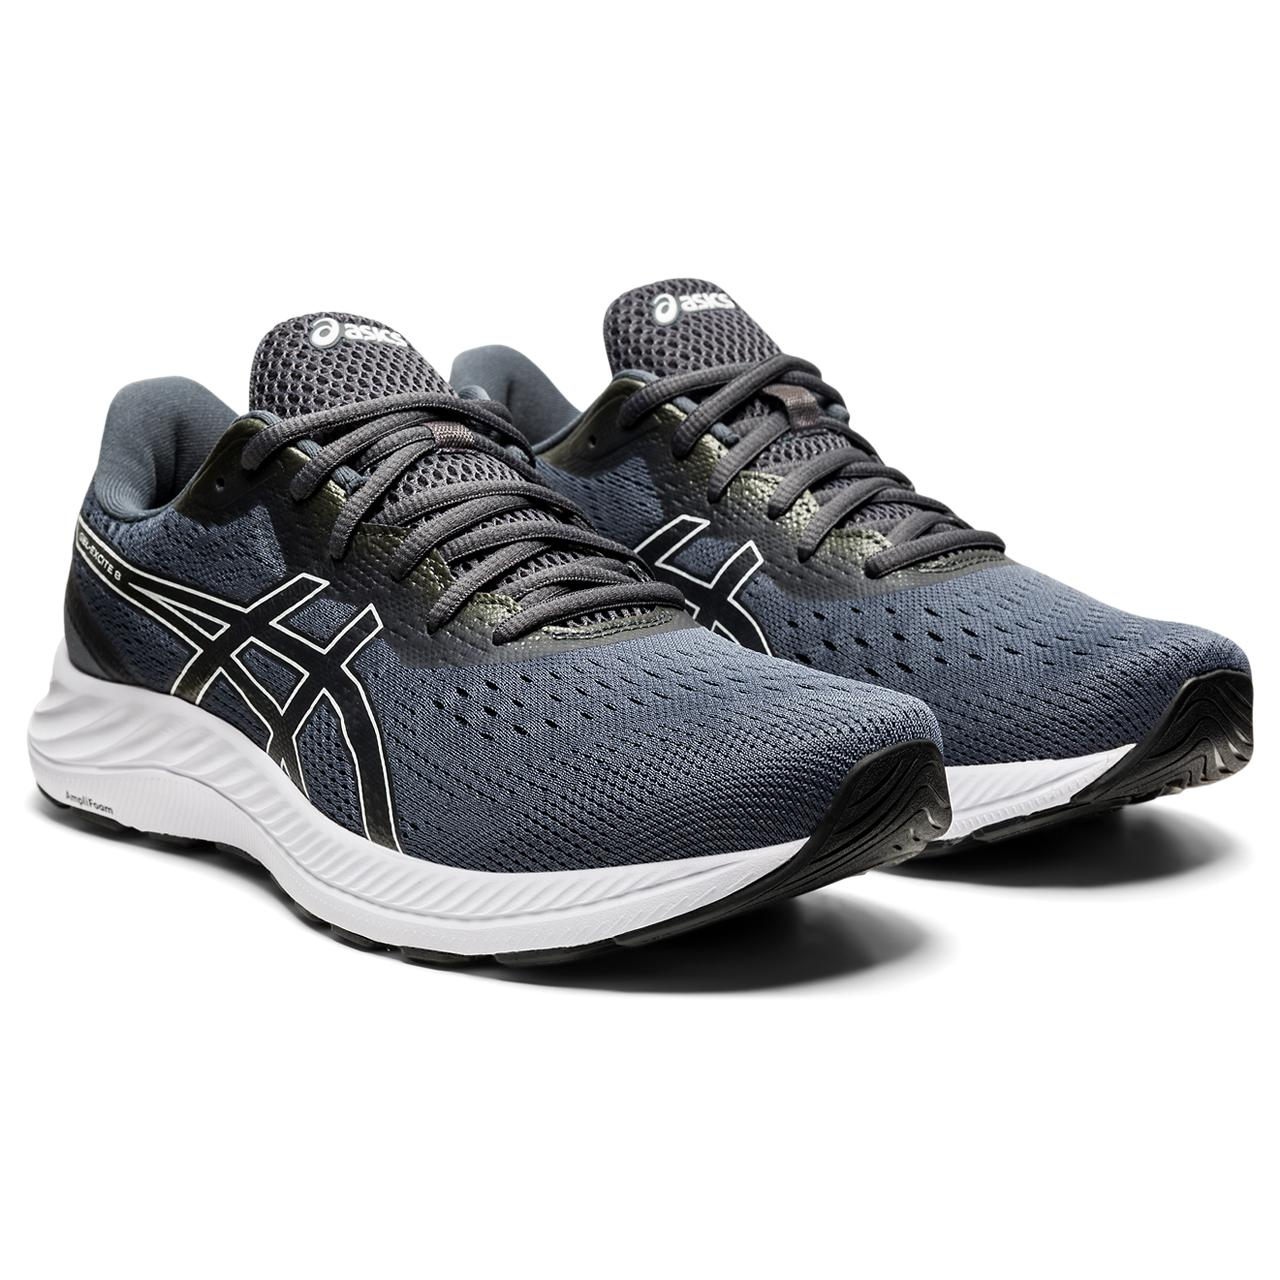 'ASICS' Men's Gel Excite 8 - Carrier Grey / White